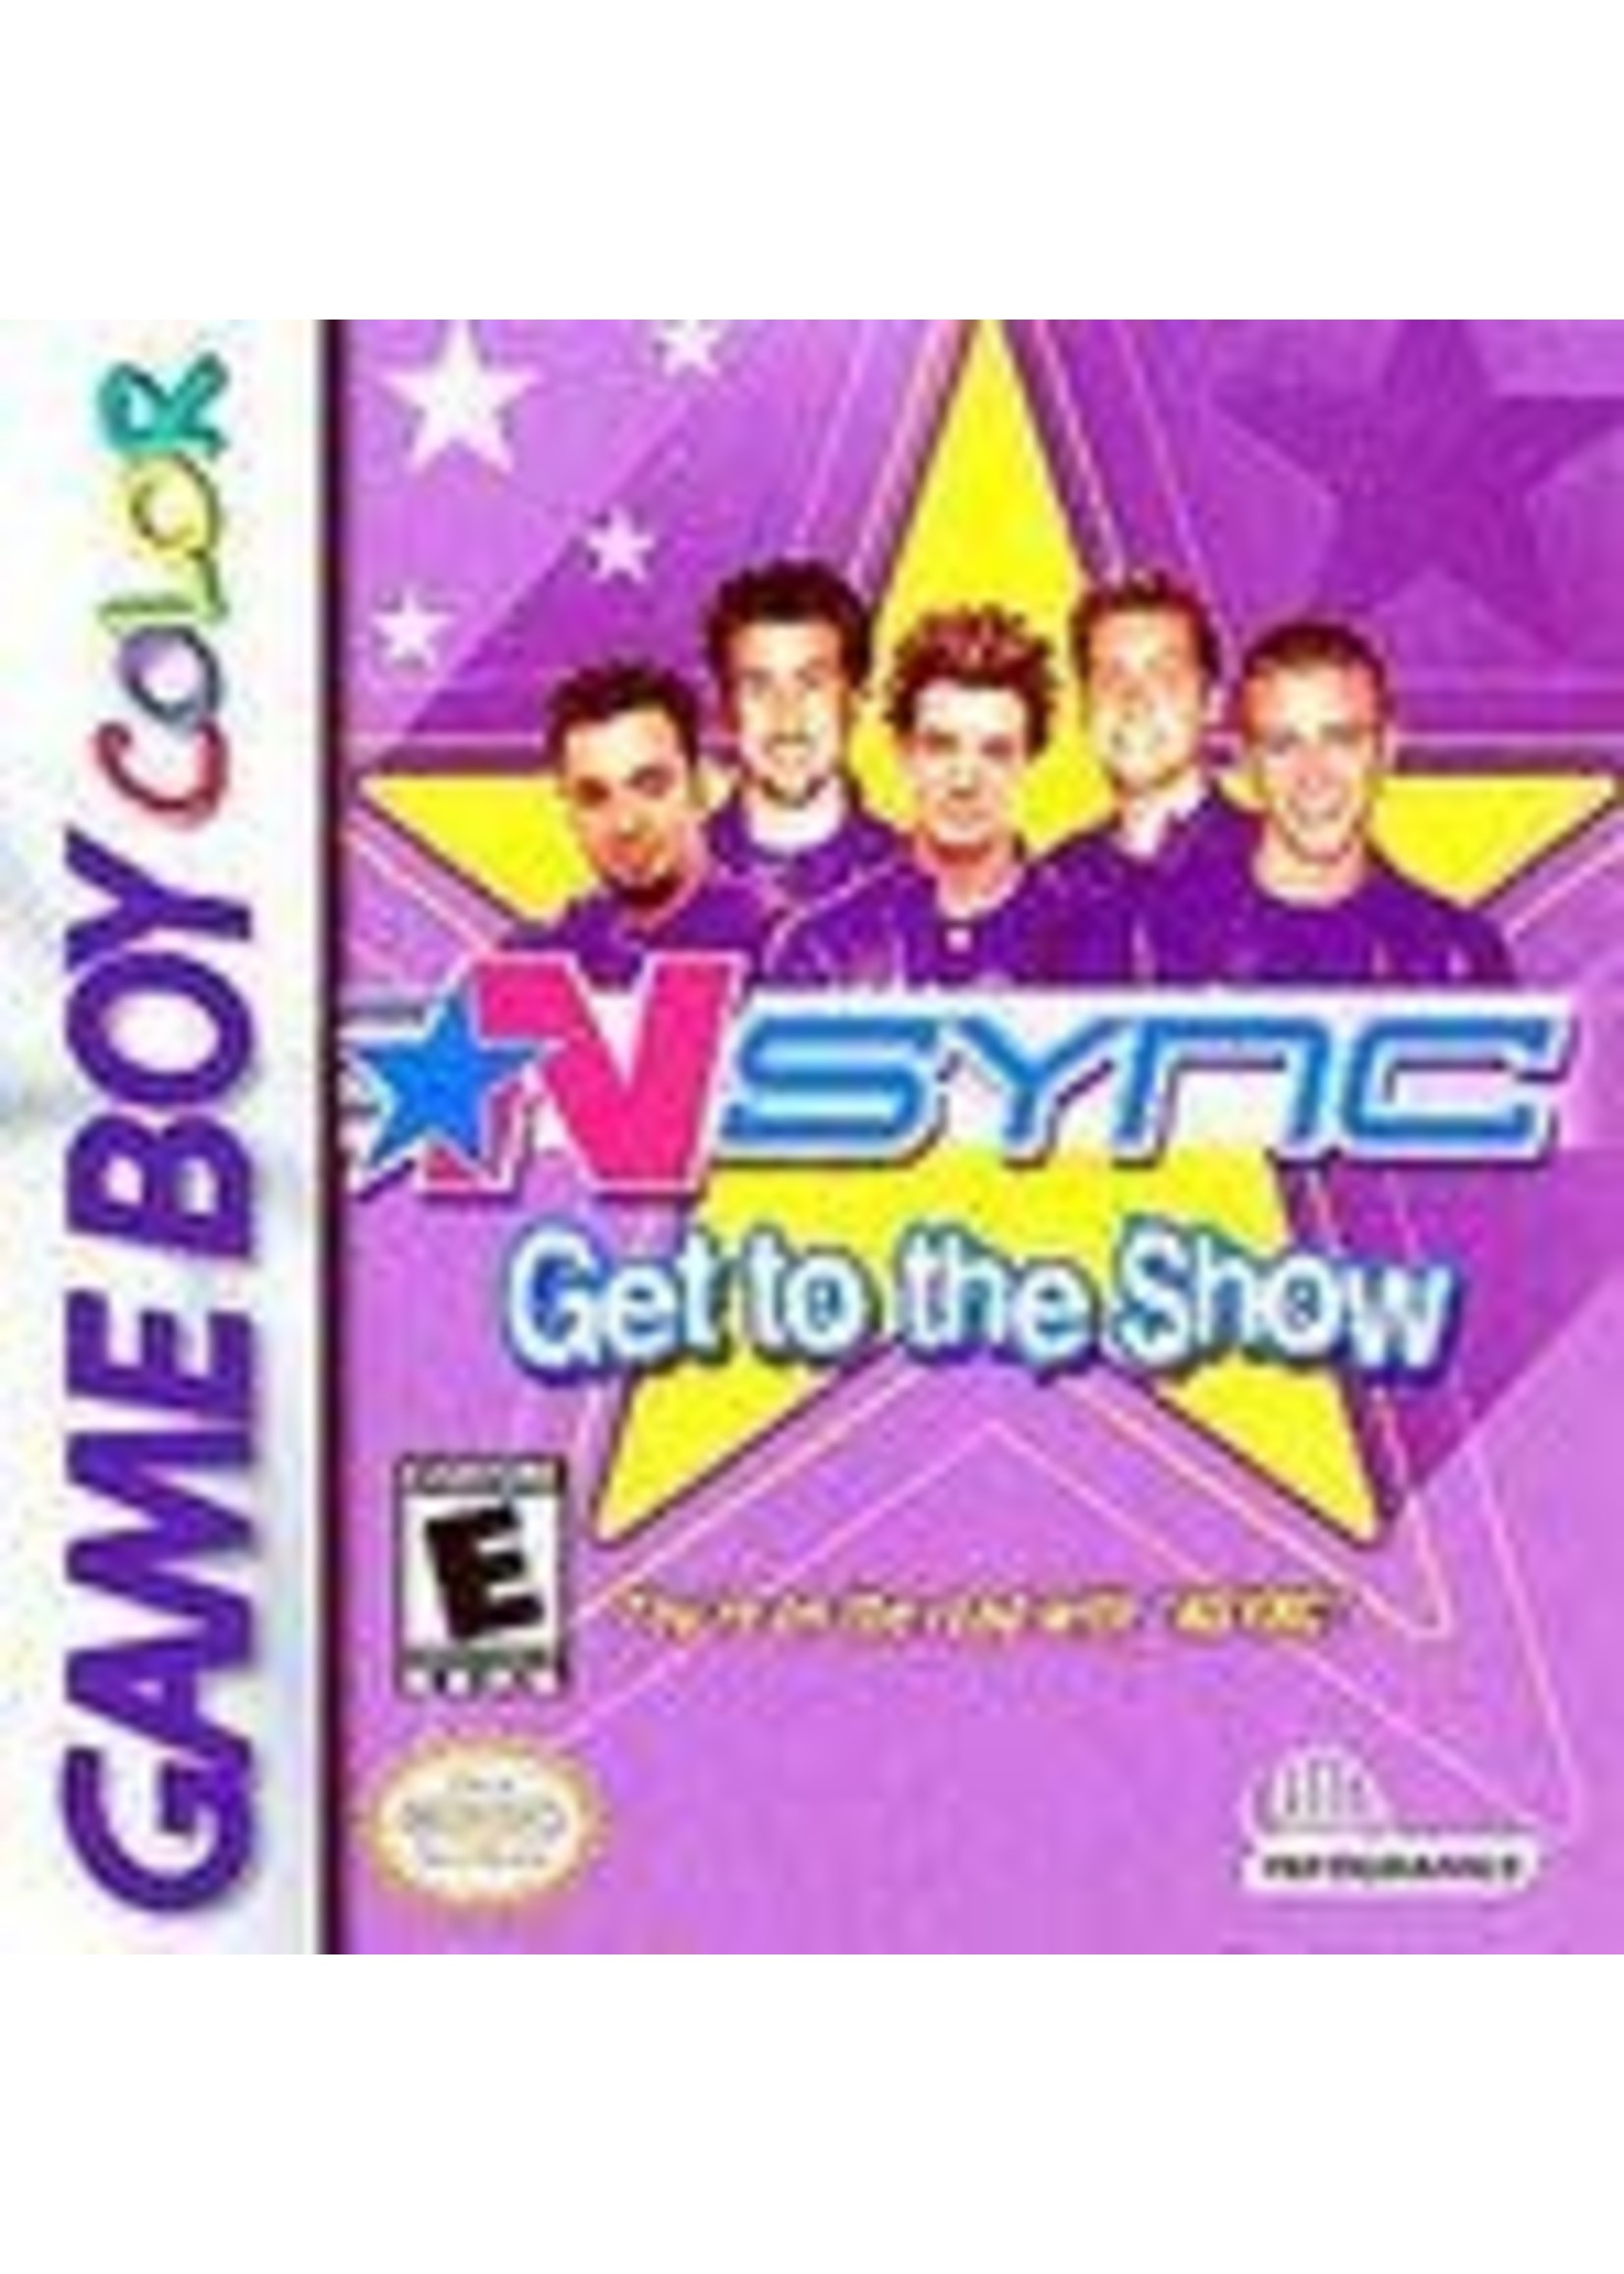 NSYNC Get To The Show GameBoy Color